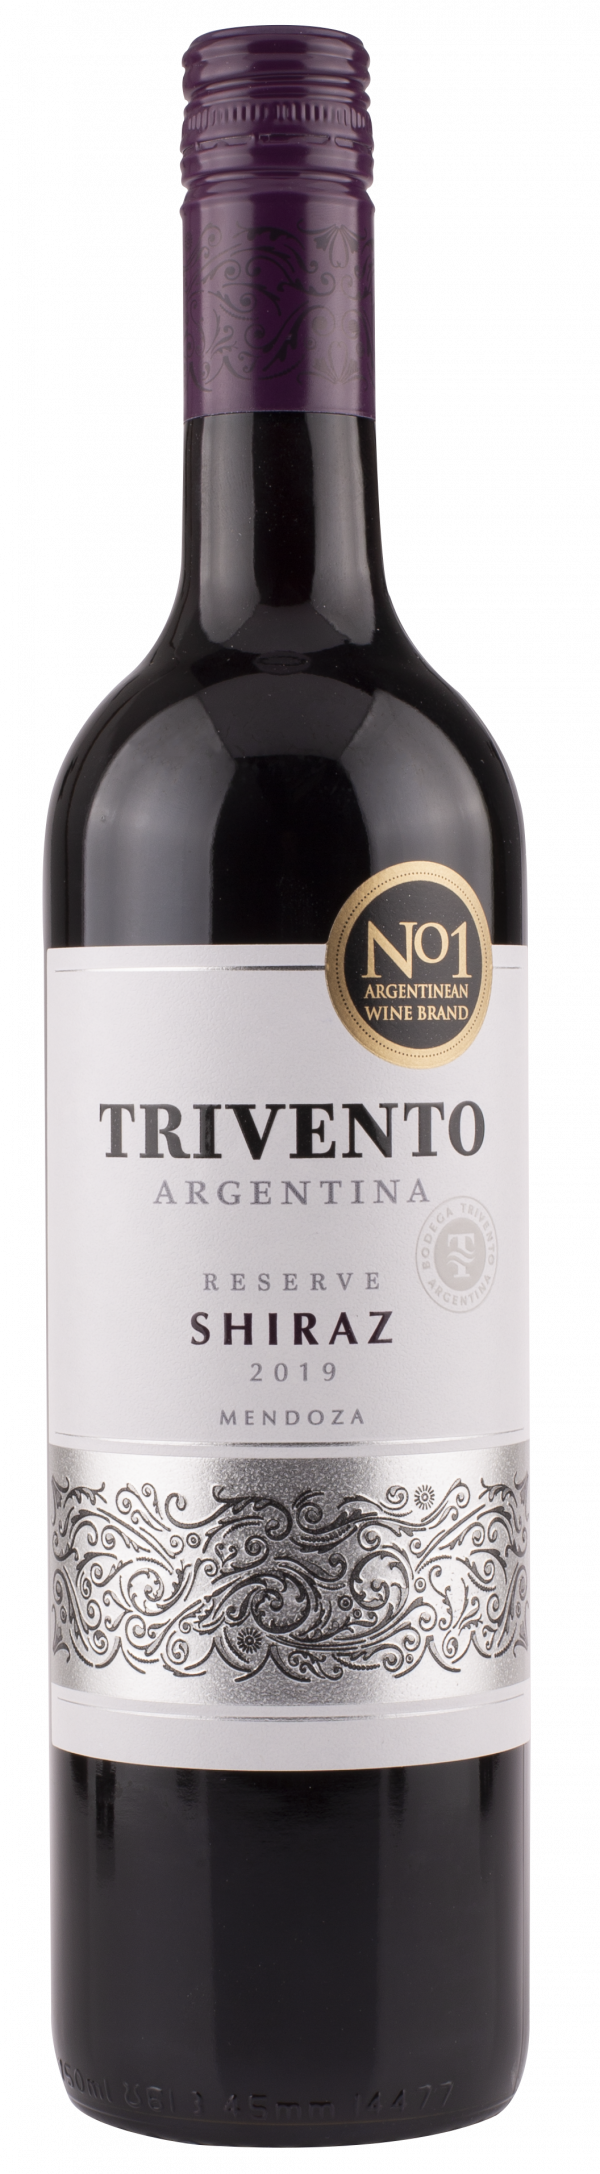 Trivento launches new Reserve Shiraz into UK market